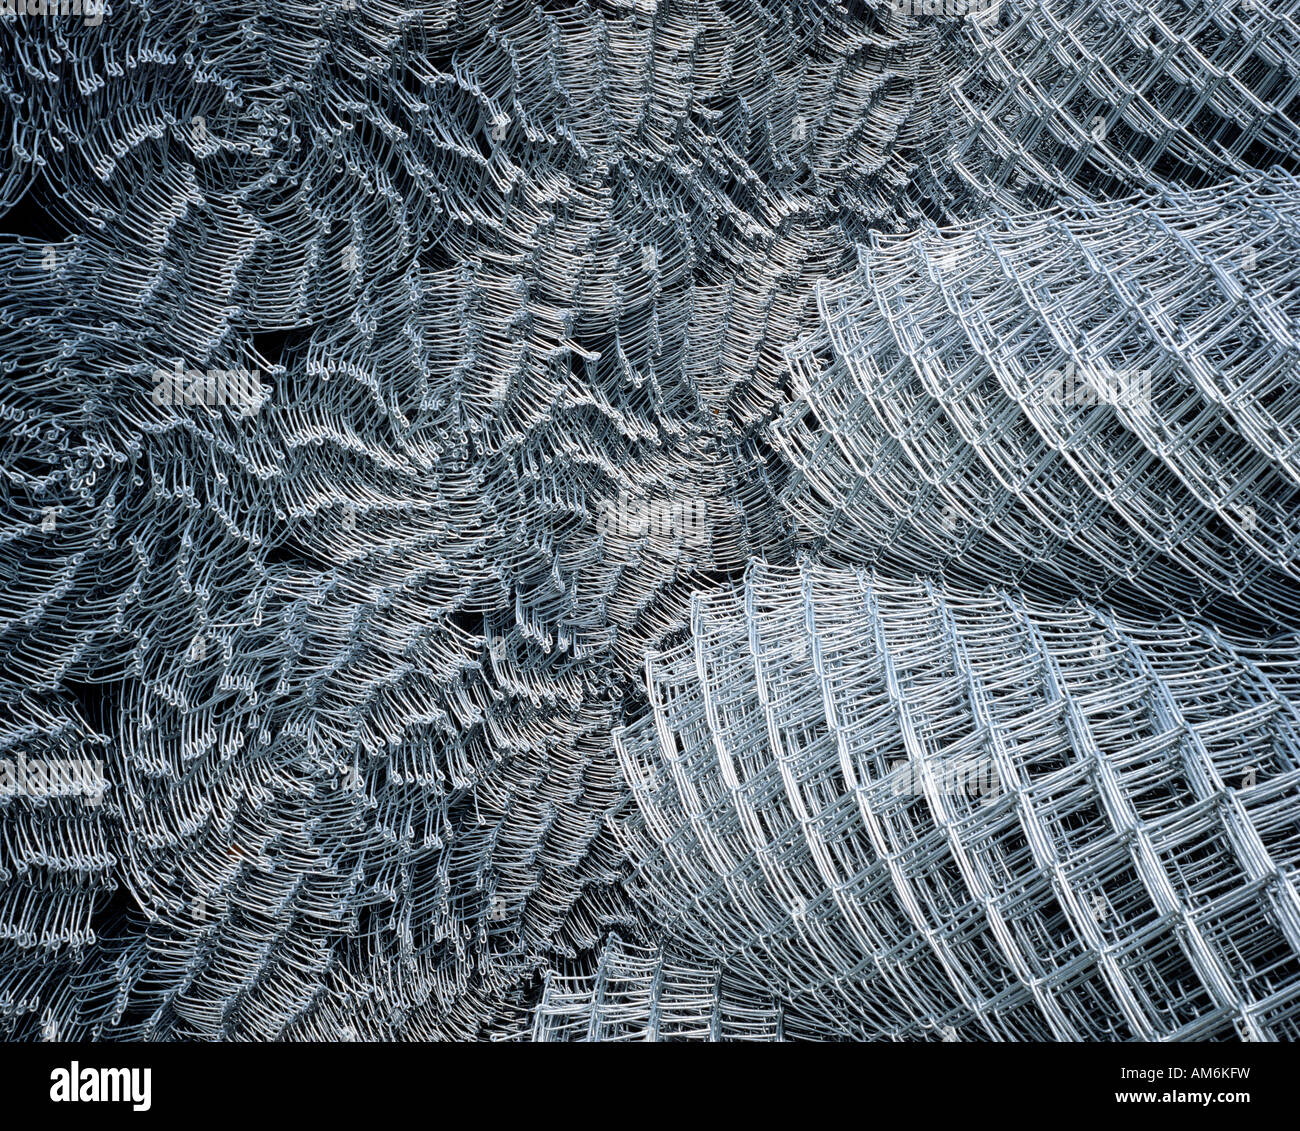 Wire Netting Stock Photos & Wire Netting Stock Images - Alamy